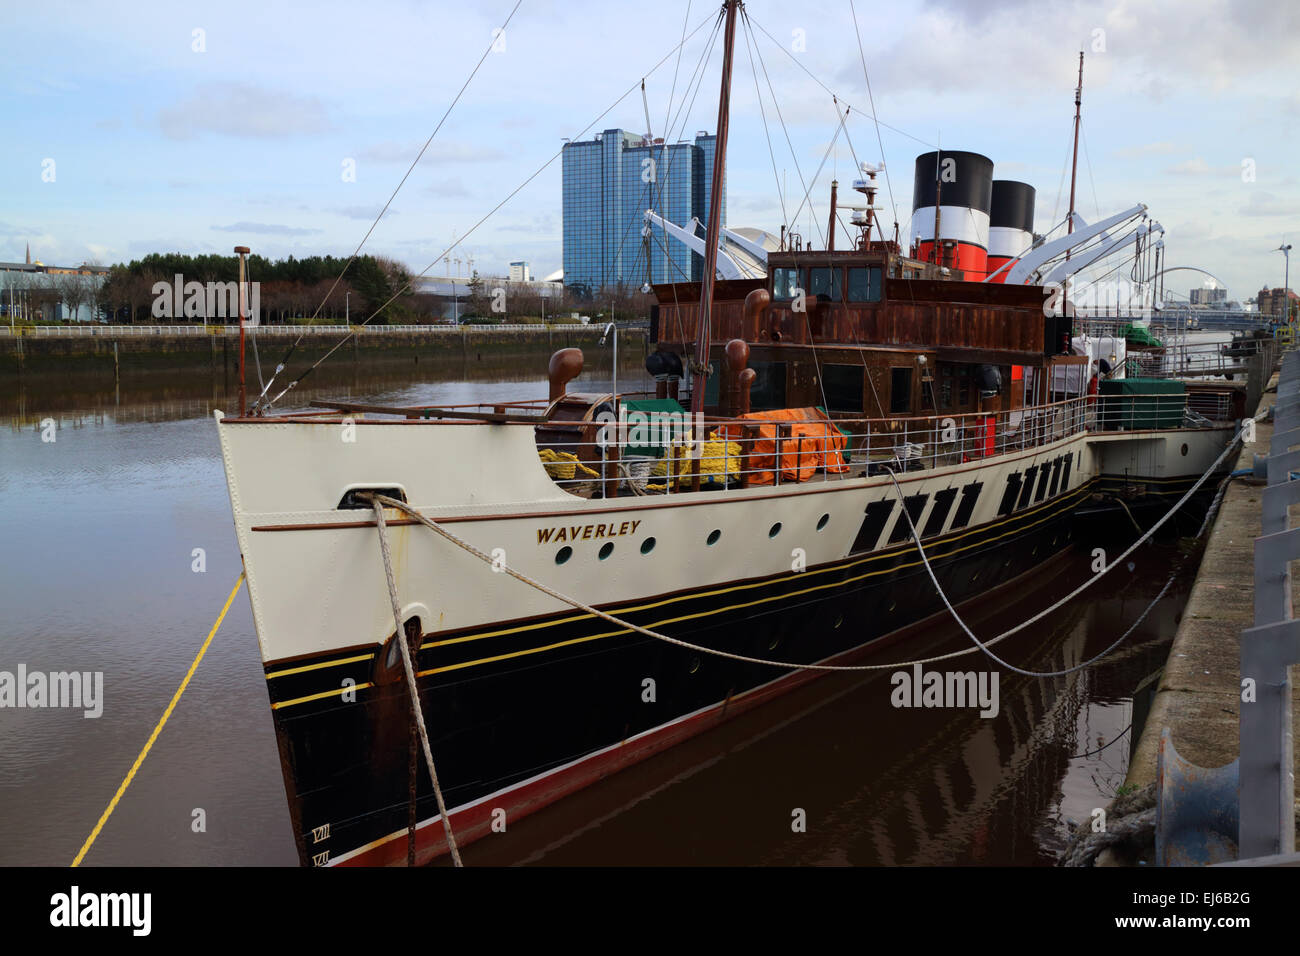 PS waverley paddle steamer Glasgow Scotland uk - Stock Image